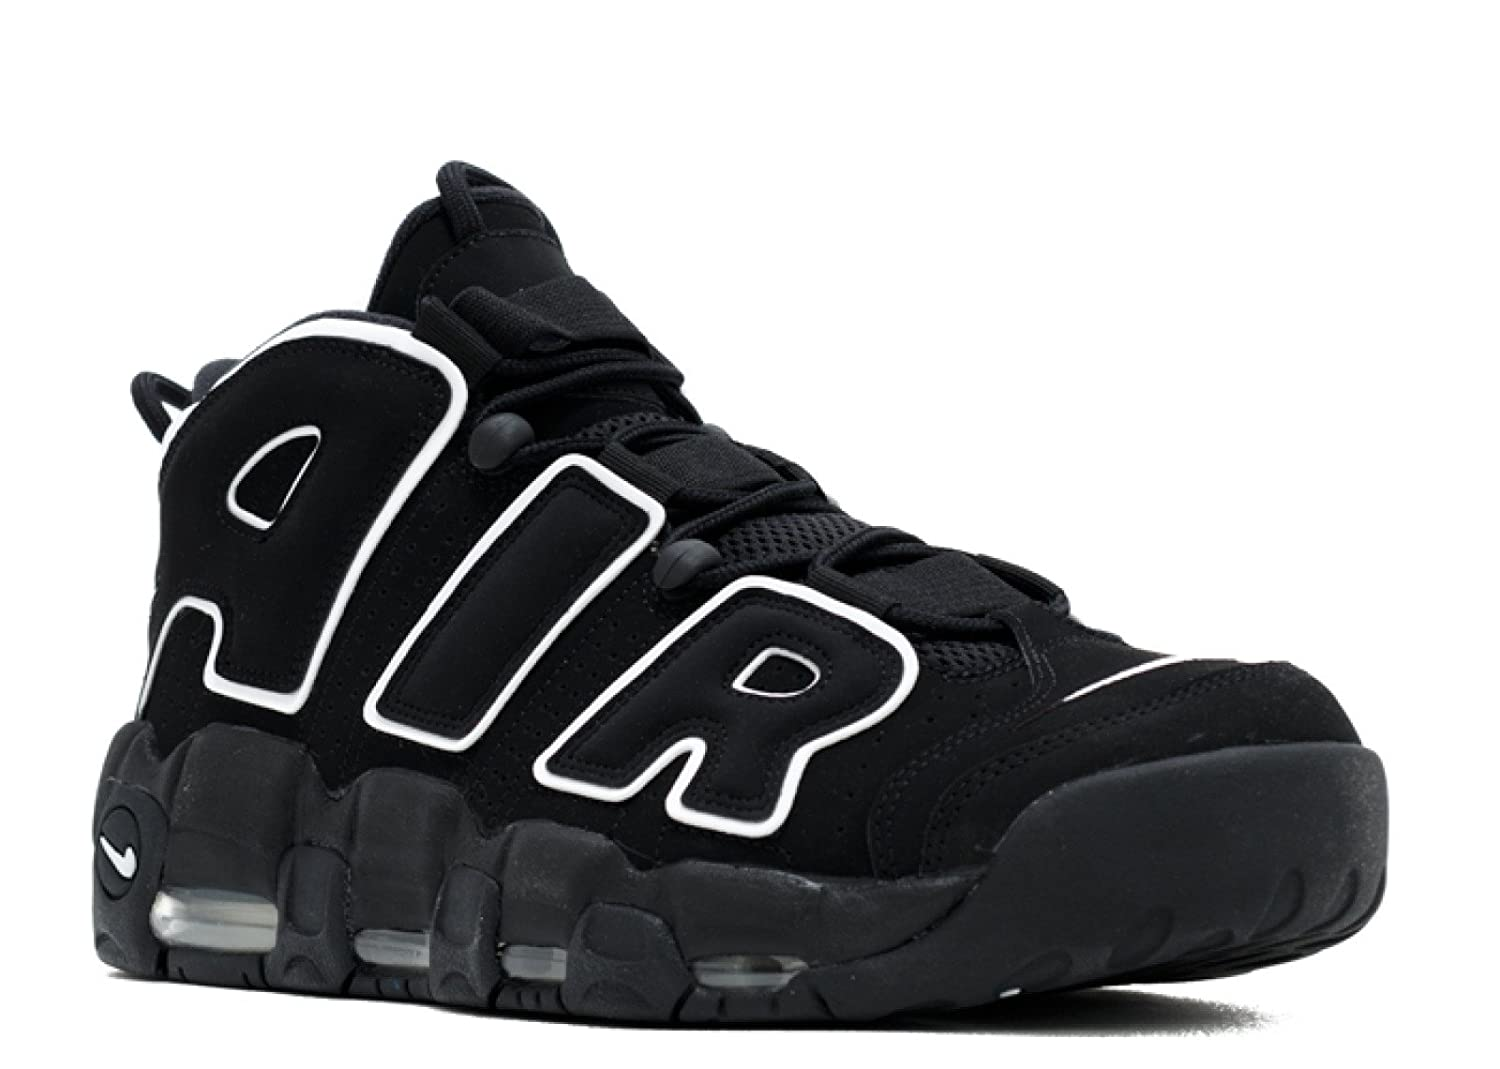 [NIKE - ナイキ] AIR MORE UPTEMPO '2016 RELEASE' - 414962-002 (メンズ) B01D7RJ8L4  10.5